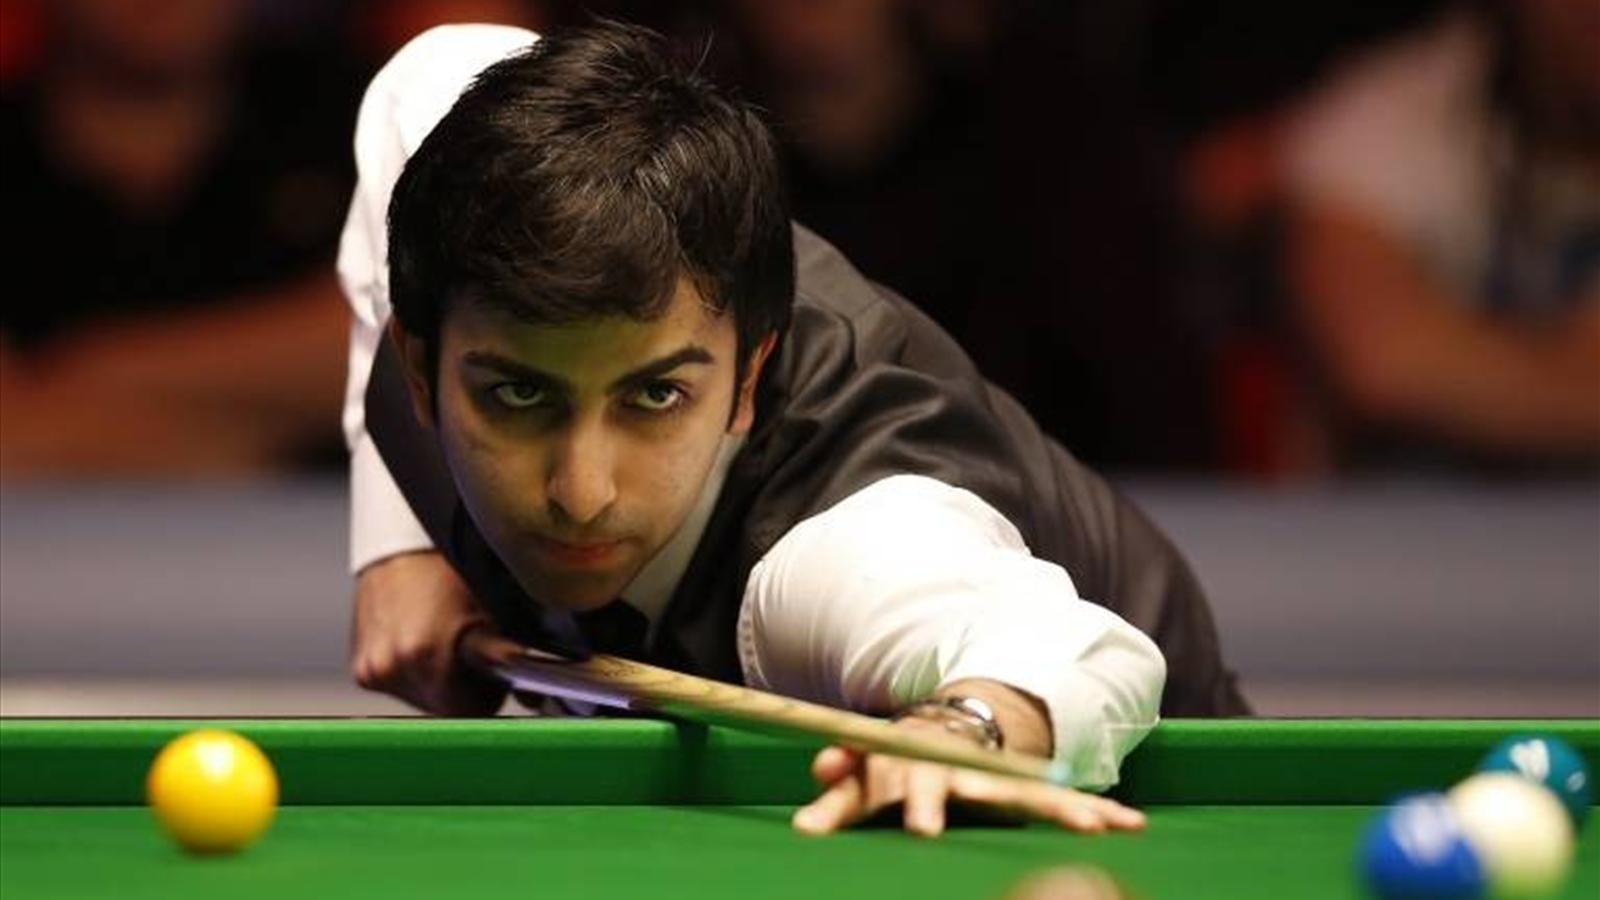 Pankaj Advani wins his third straight Billiards title taking his tally of World titles to 20